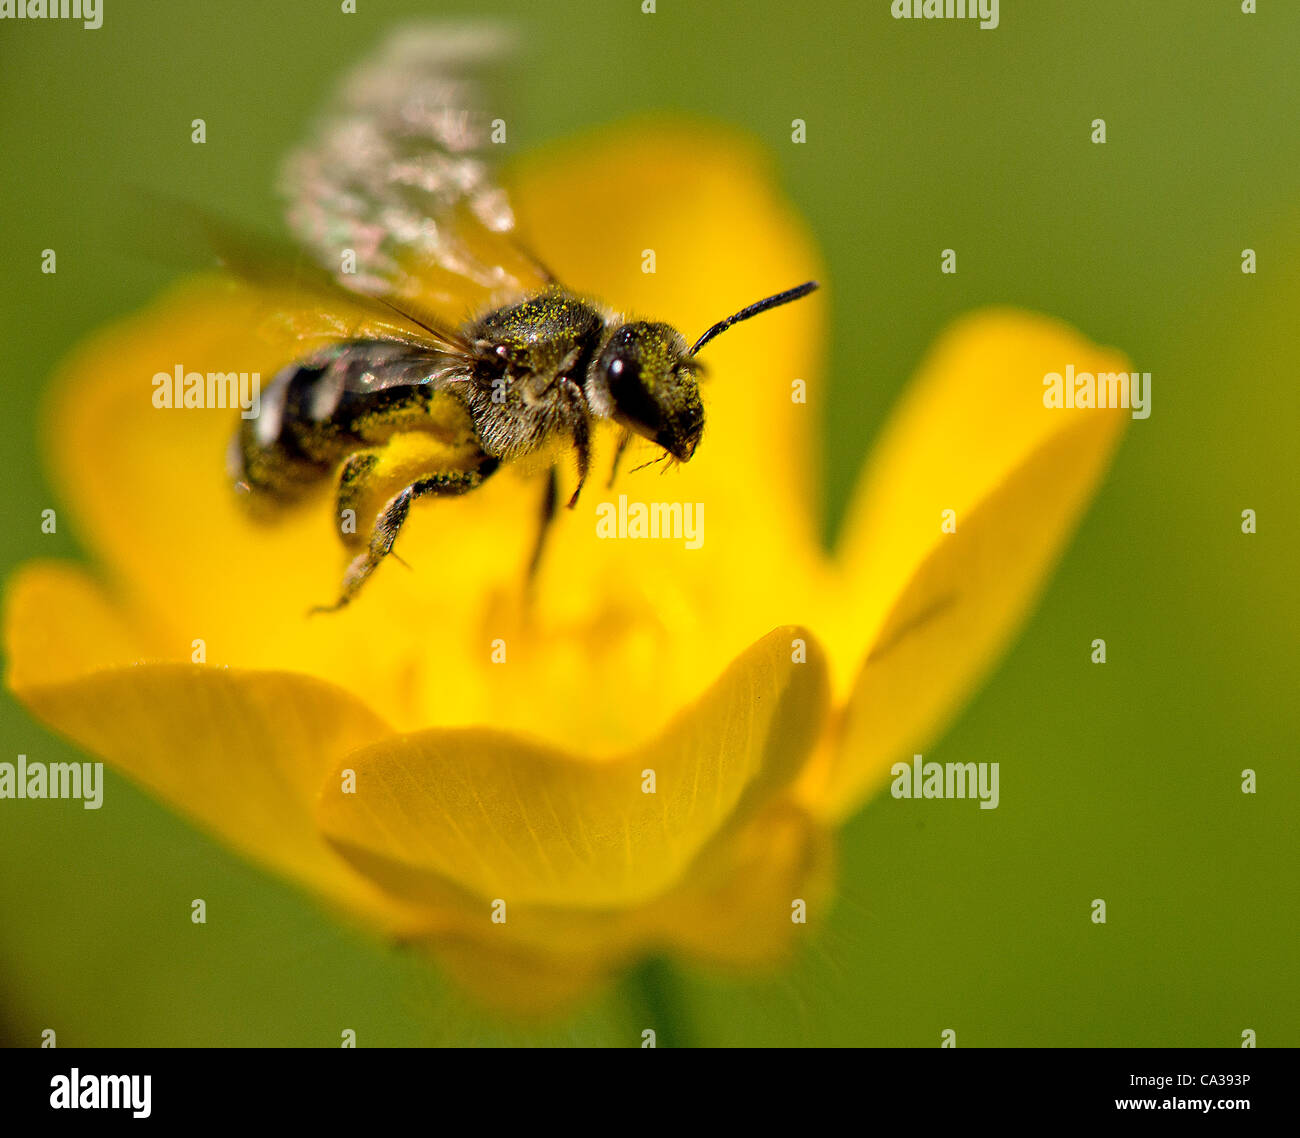 May 30, 2012 - Roseburg, Oregon, U.S - A small pollen covered sweat bee alights on a yellow wildflower growing in - Stock Image